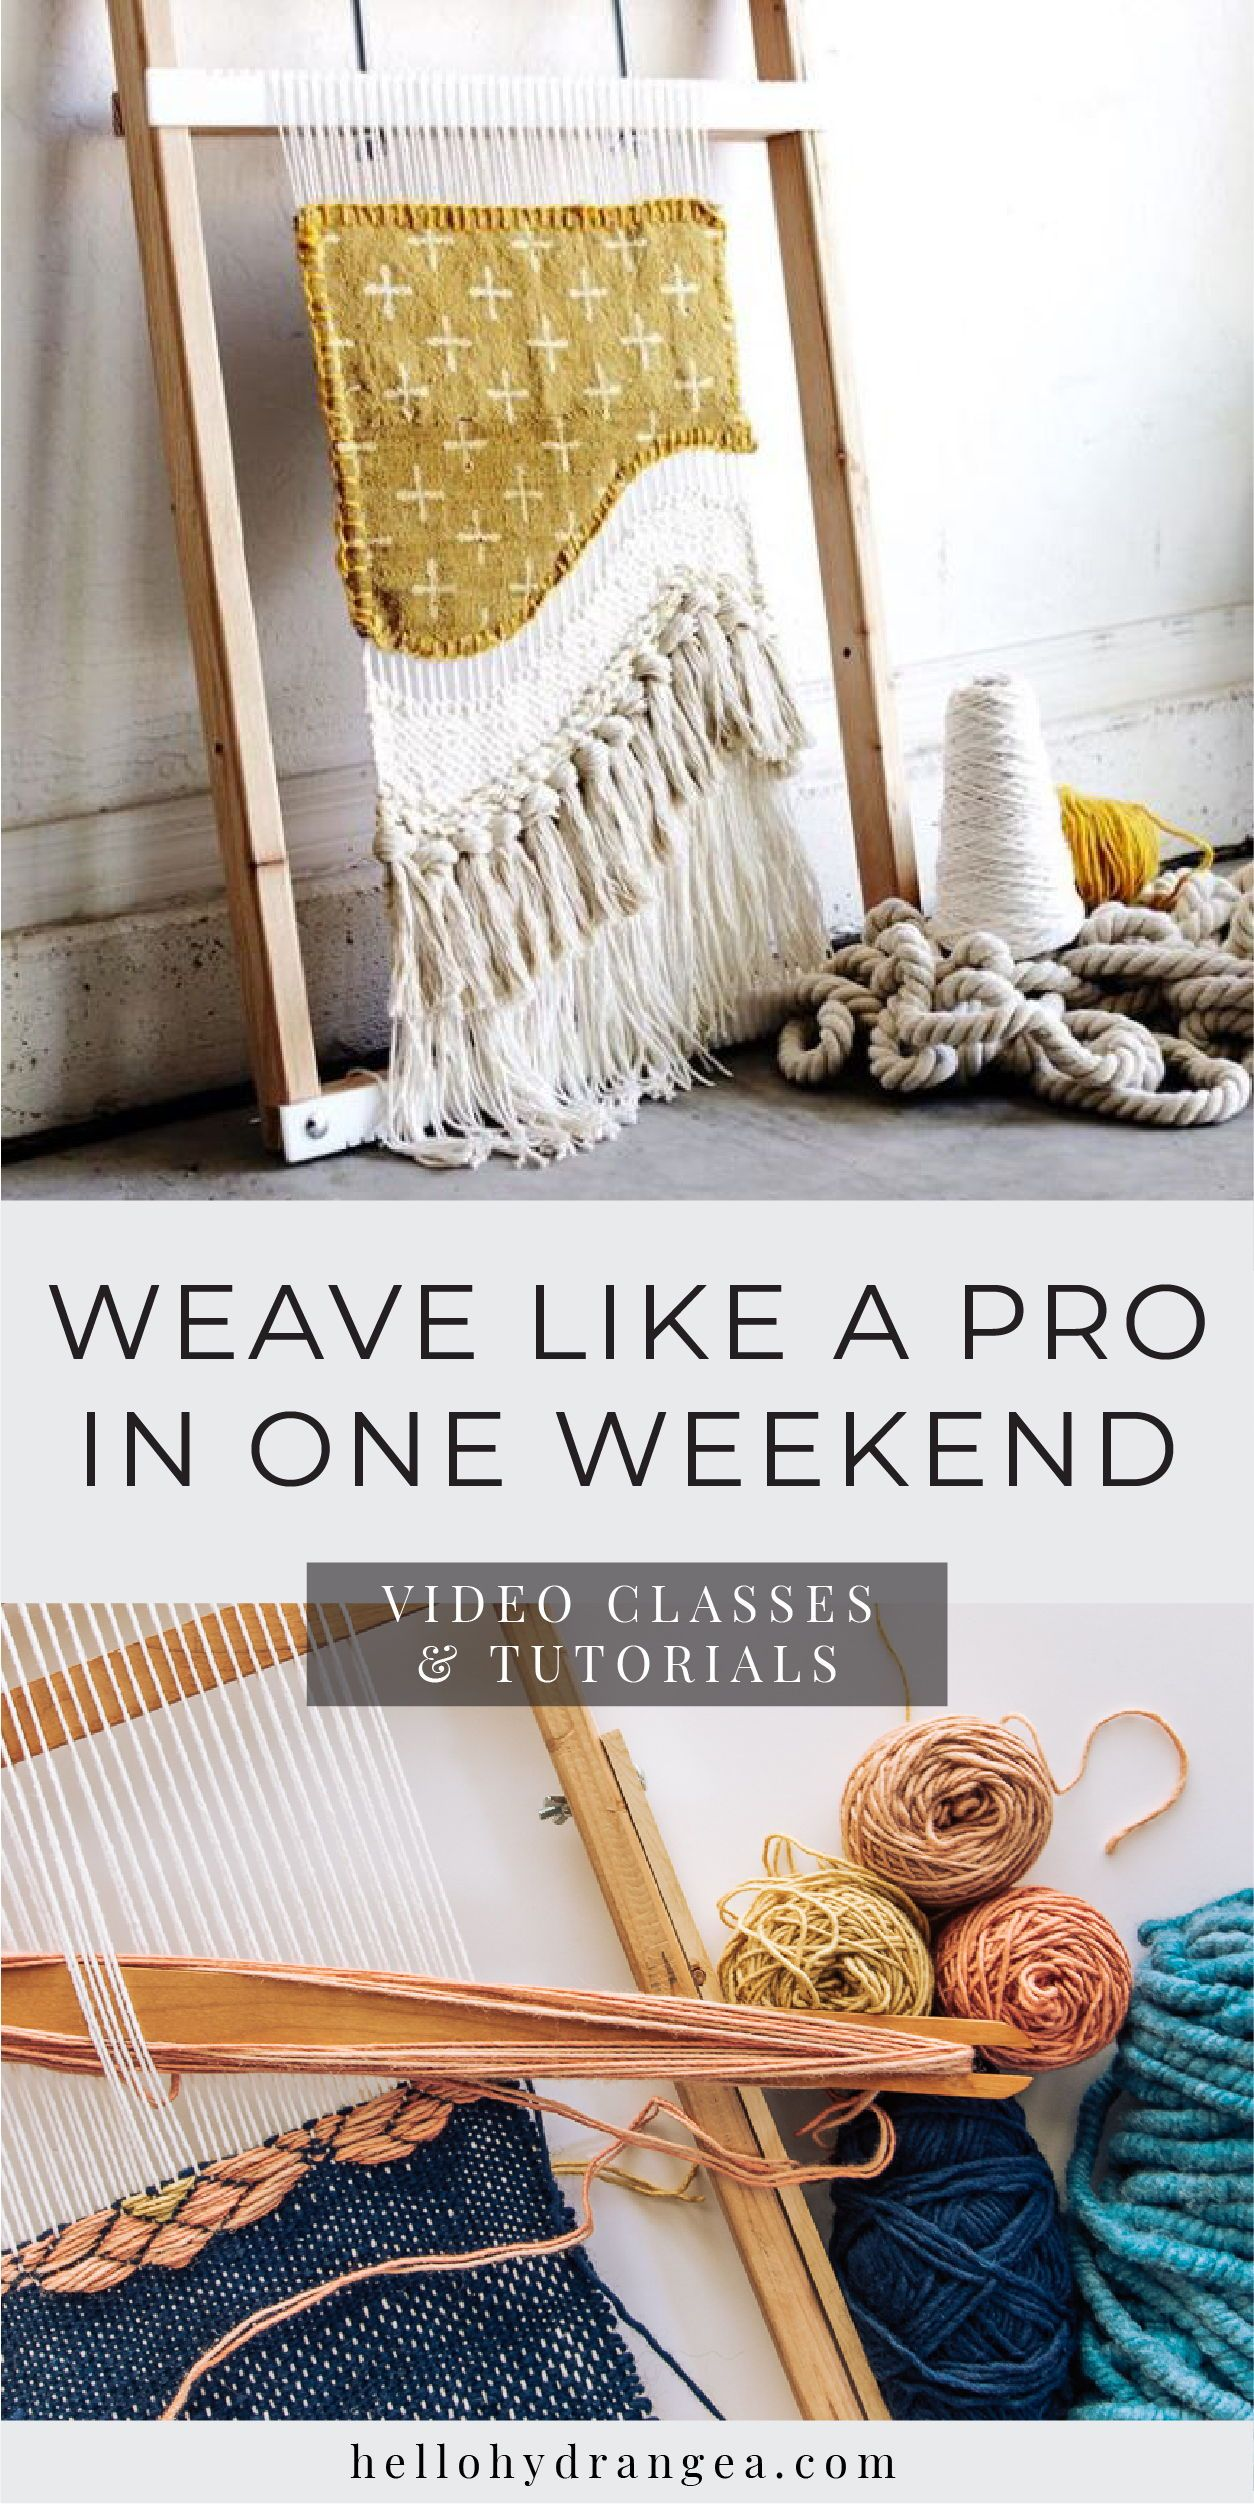 Weave Like a Pro in One Weekend | Video Classes & Tutorials Weaving projects for beginners, using a weaving frame loom and yarn. Hello Hydrangea has many weaving ideas, DIYs and tutorials for weaving that are easy so that you can make tapestries, rugs, wall hangings, home decor and other woven projects. Click through to check out her complete online weaving video classes and patterns. #weaving #weavingart #welcometoweaving #diyhomedecor #craftprojects #homedecorcraftideas #hellohydrangea #weaving